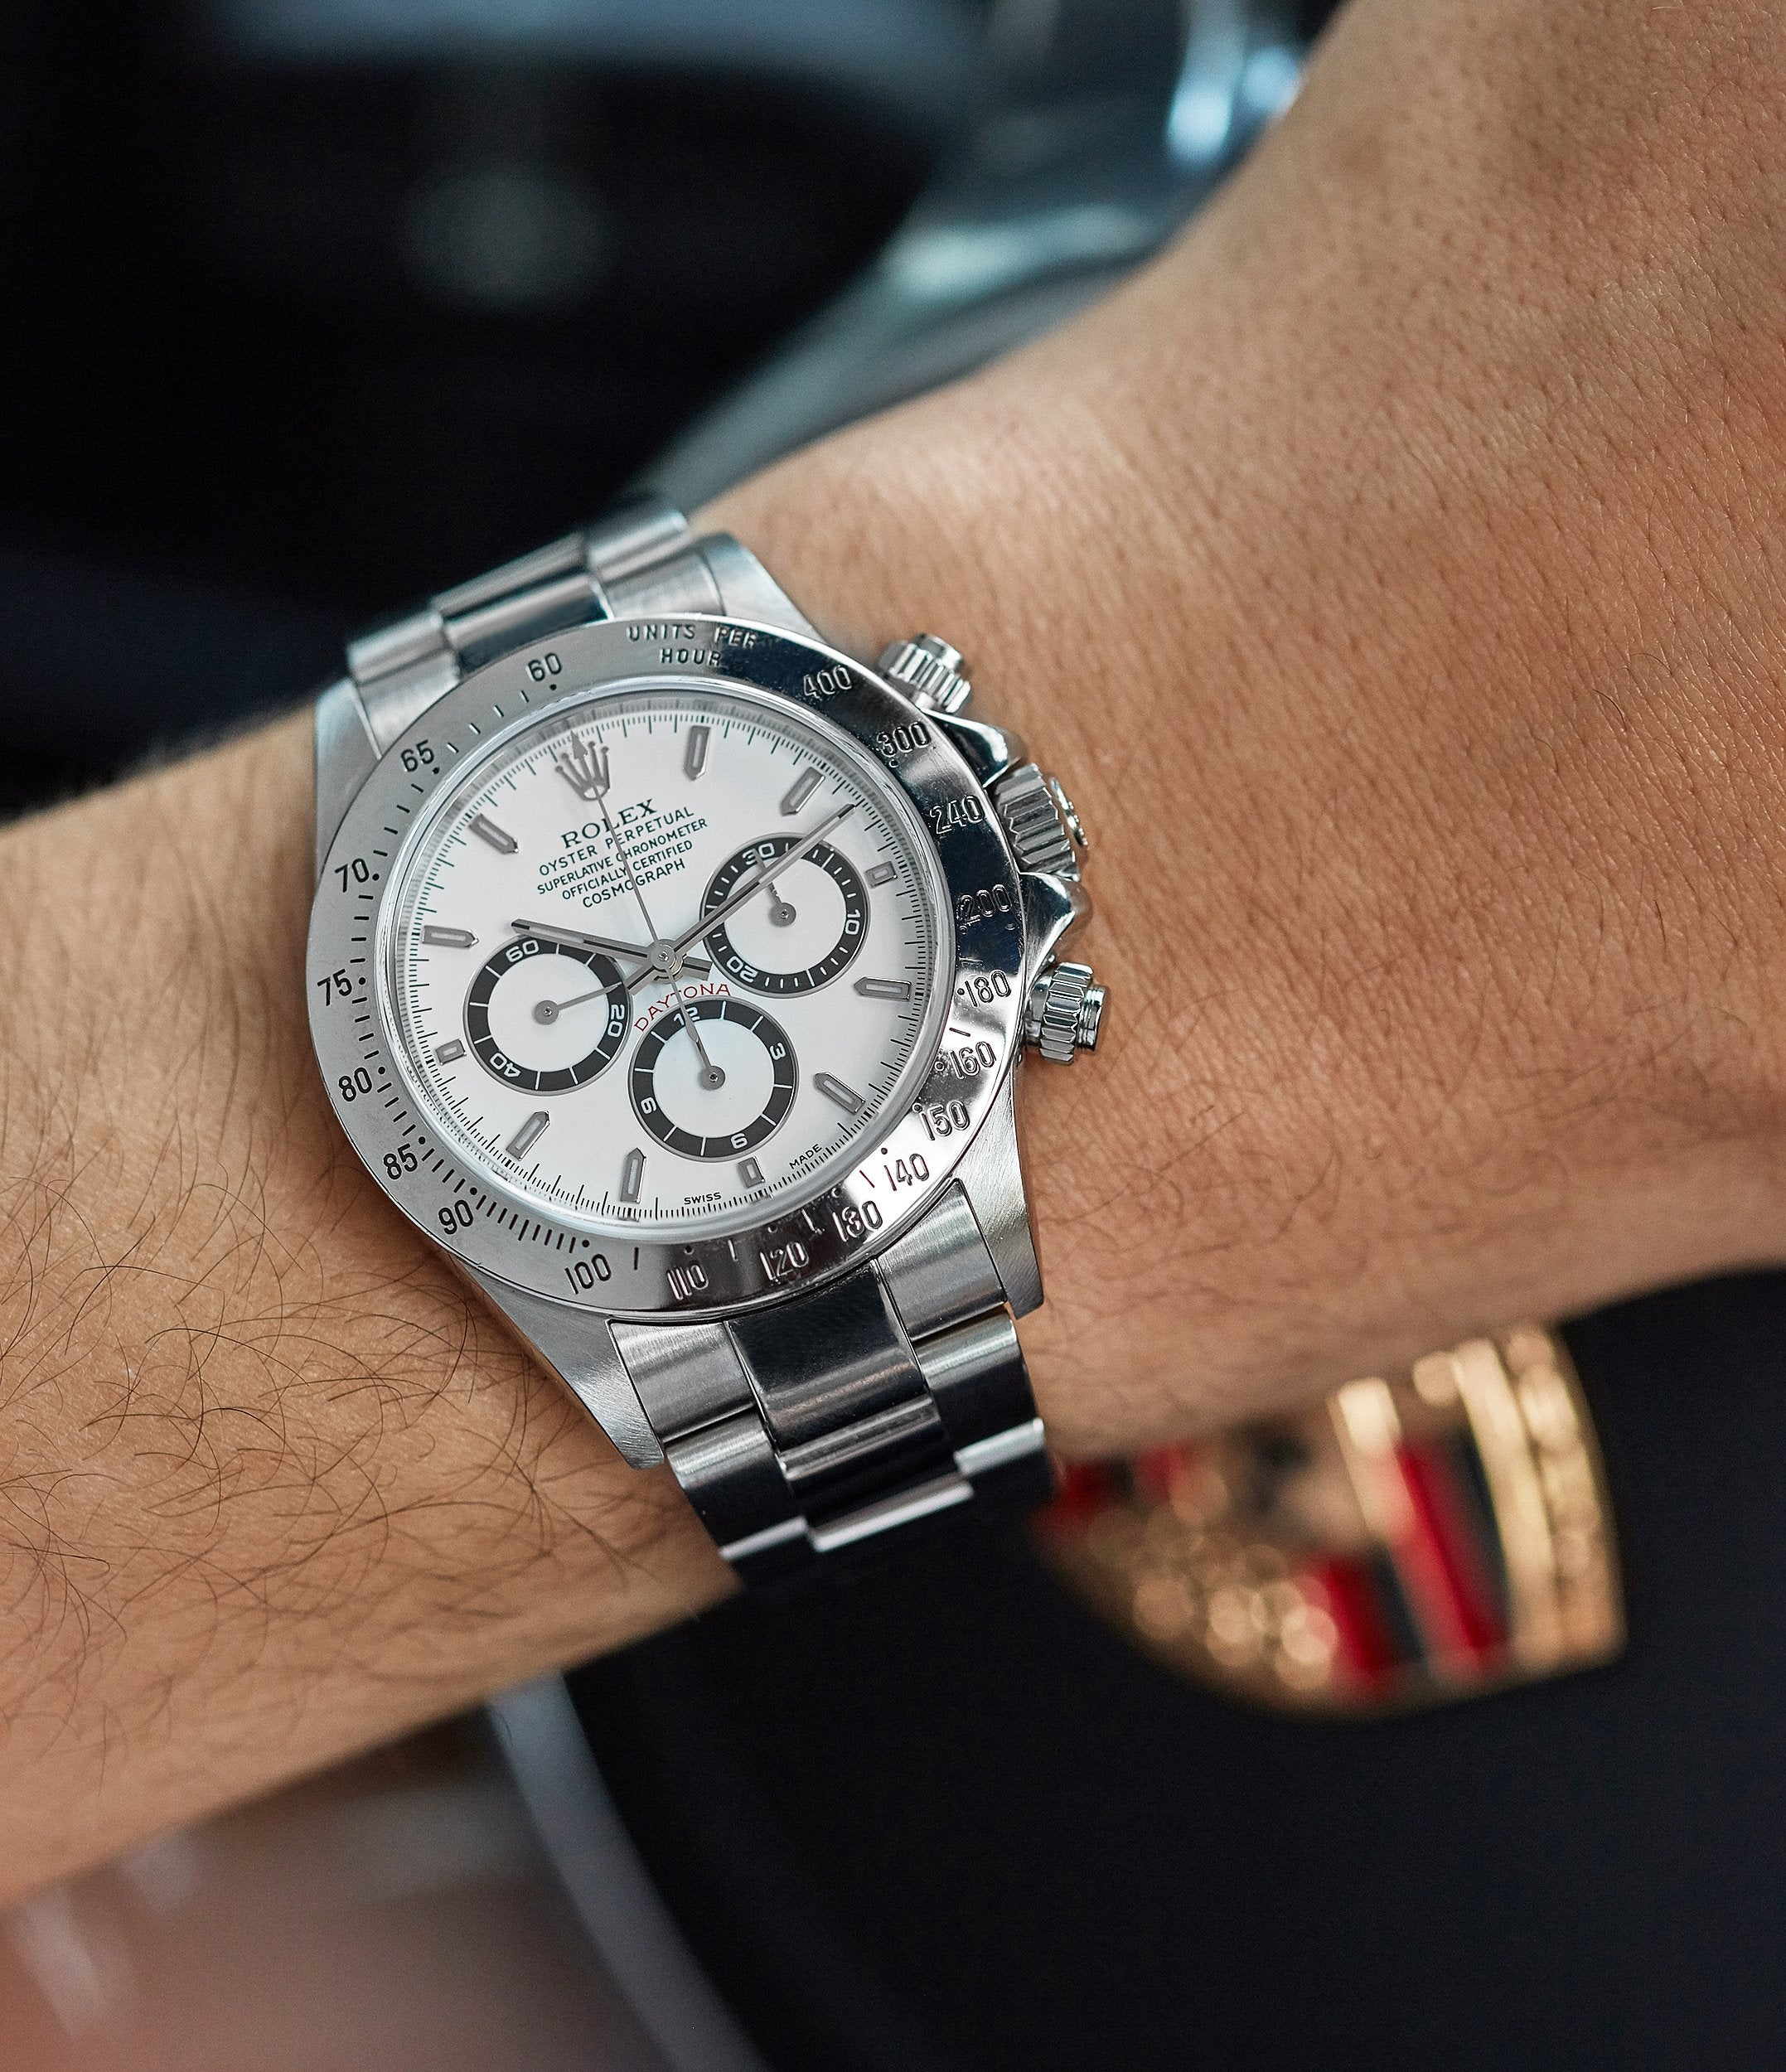 men's luxury sports watch Rolex Daytona 16520 Zenith steel vintage chronograph sports watch full set for sale online A Collected Man London specialist rare watches